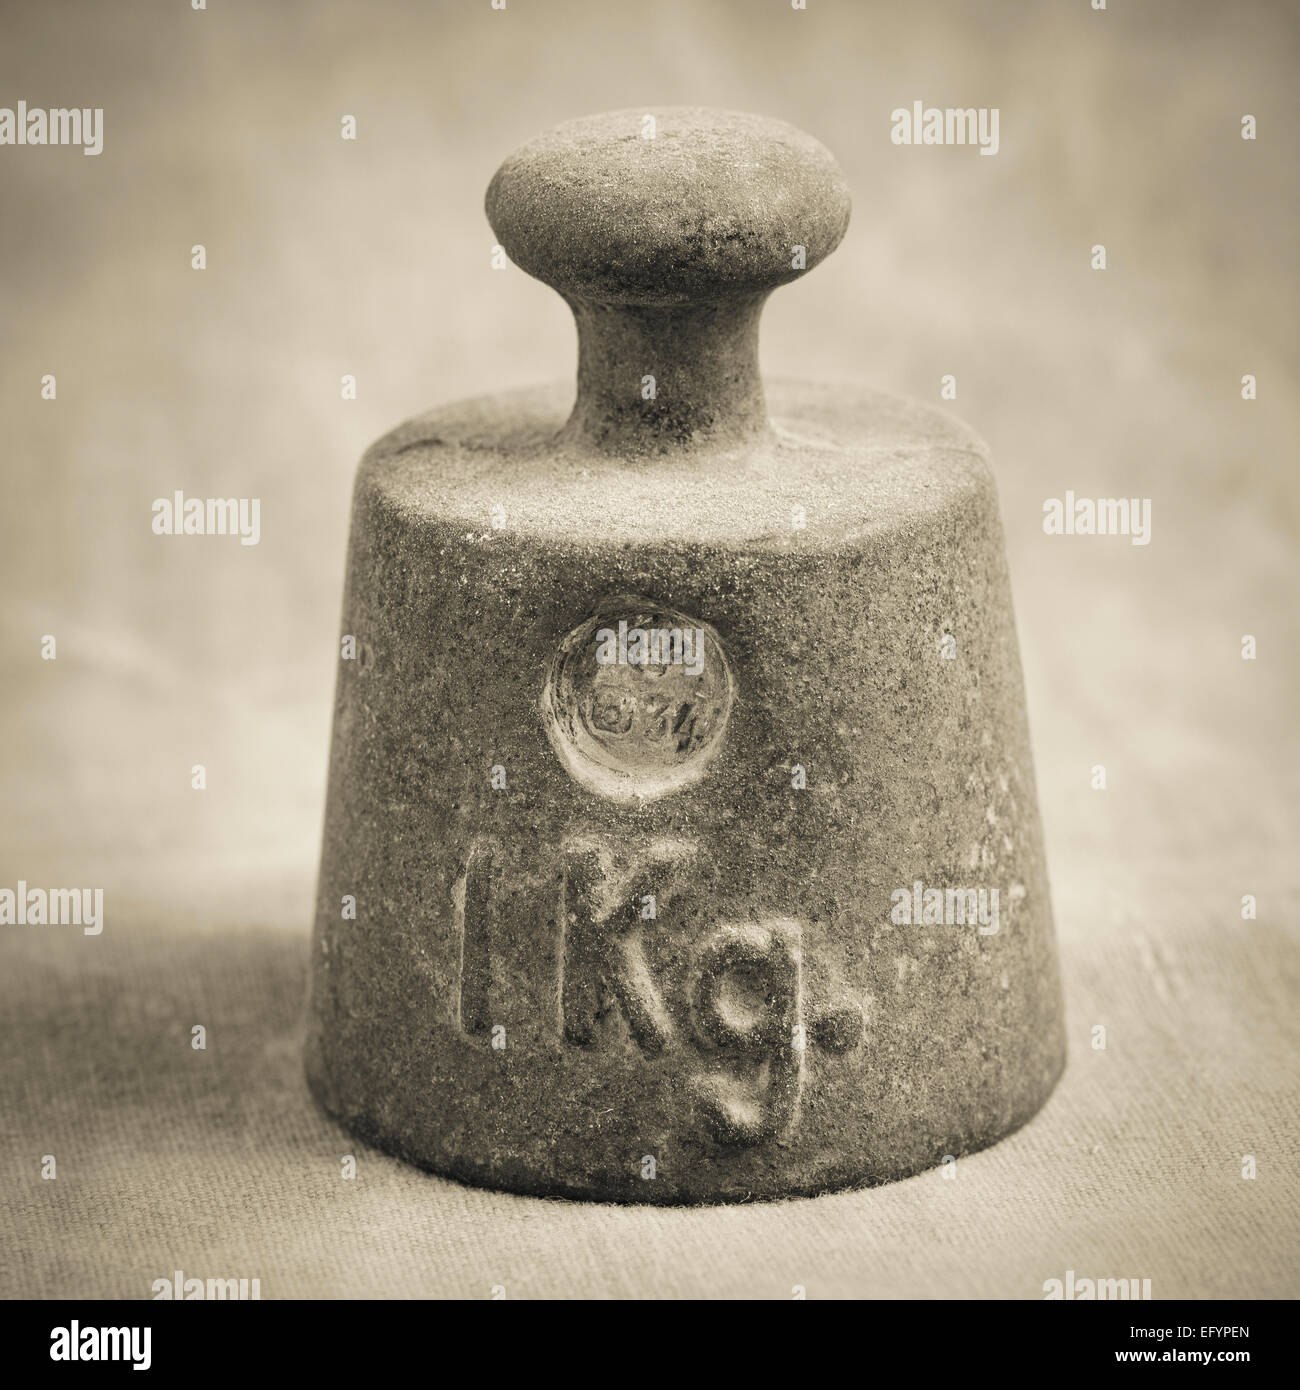 Still life of old fashioned iron weight of one kilogram used for measurement - Stock Image